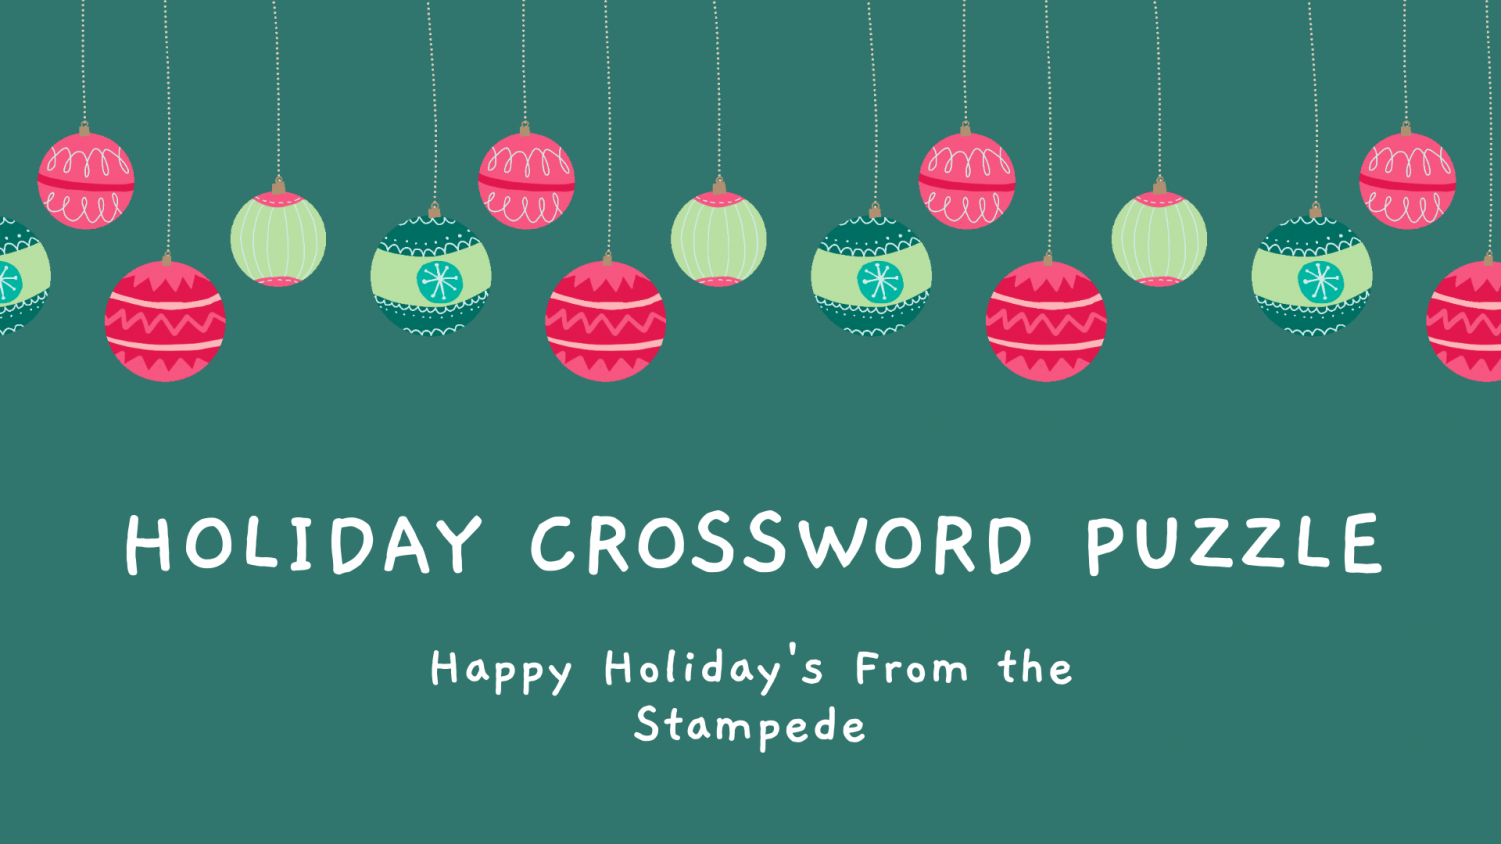 Happy Holidays from the Stampede!